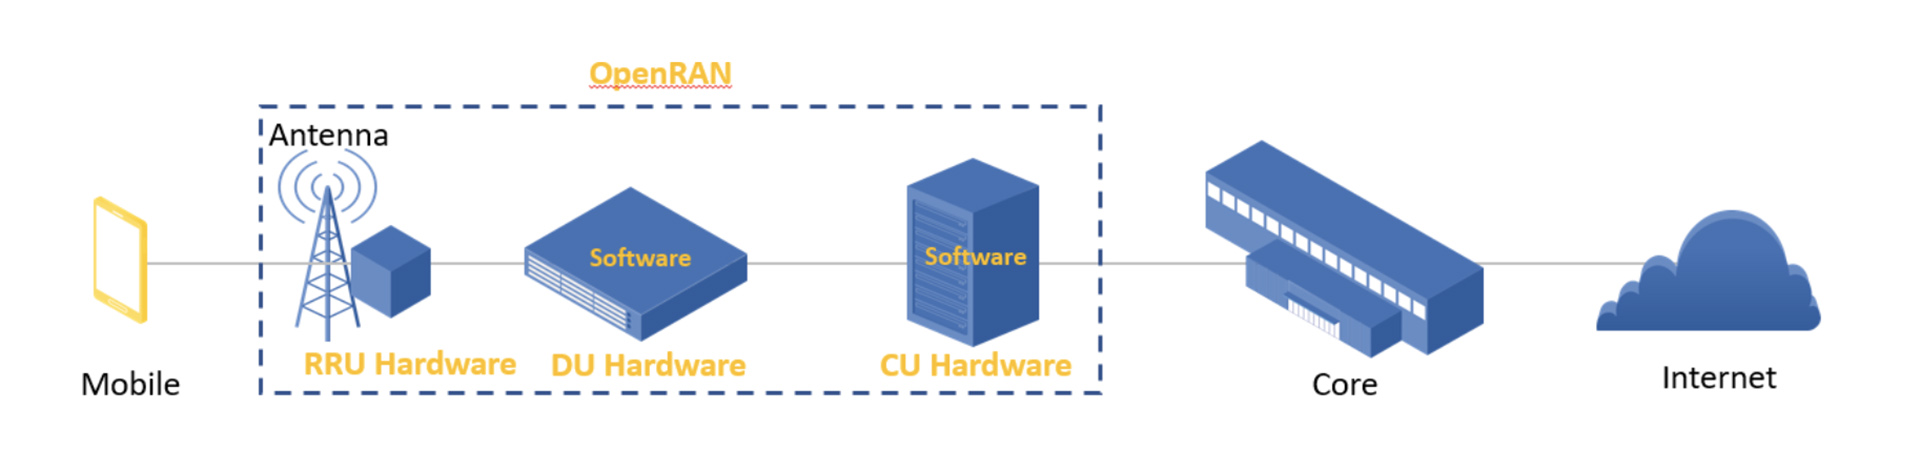 In a traditional radio access network, the RRU hardware, DU hardware, and CU software are sold as a package. The goal of OpenRAN and the Evenstar program is to decouple these elements and provide alternative solutions supporting standard interfaces.